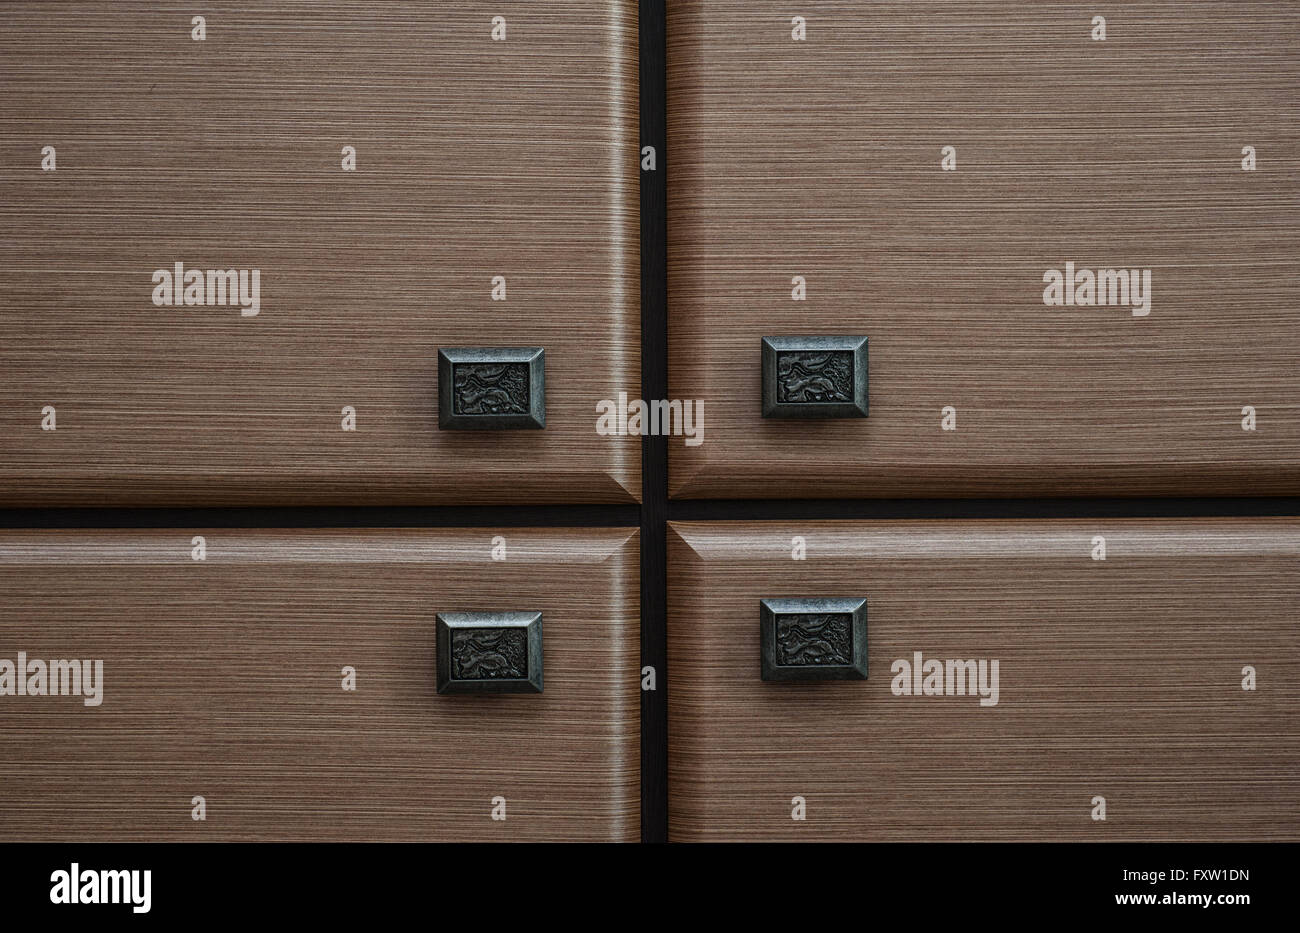 detail of four wooden drawers with metal handles - Stock Image